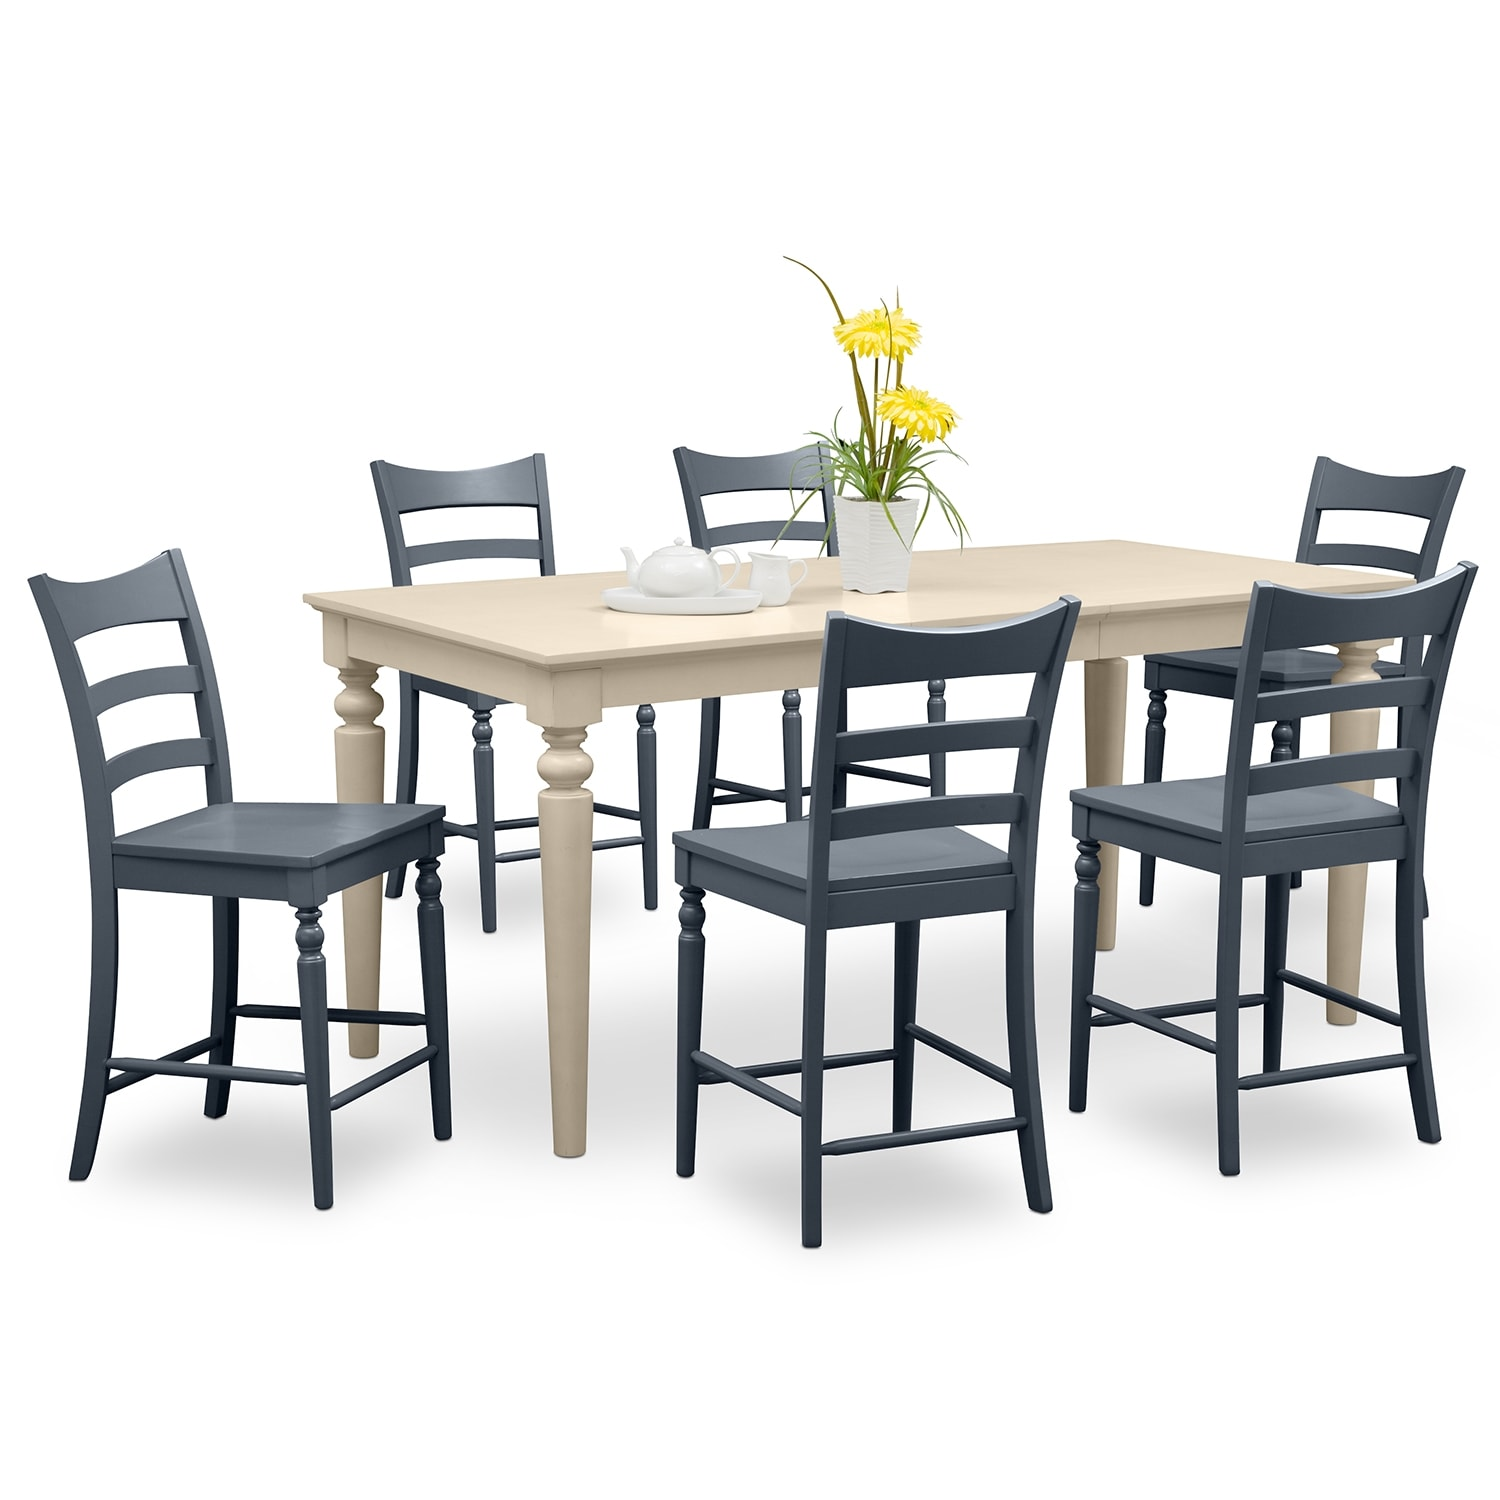 Carnival blue ii dining room 7 pc counter height dinette for Dining room furniture specials